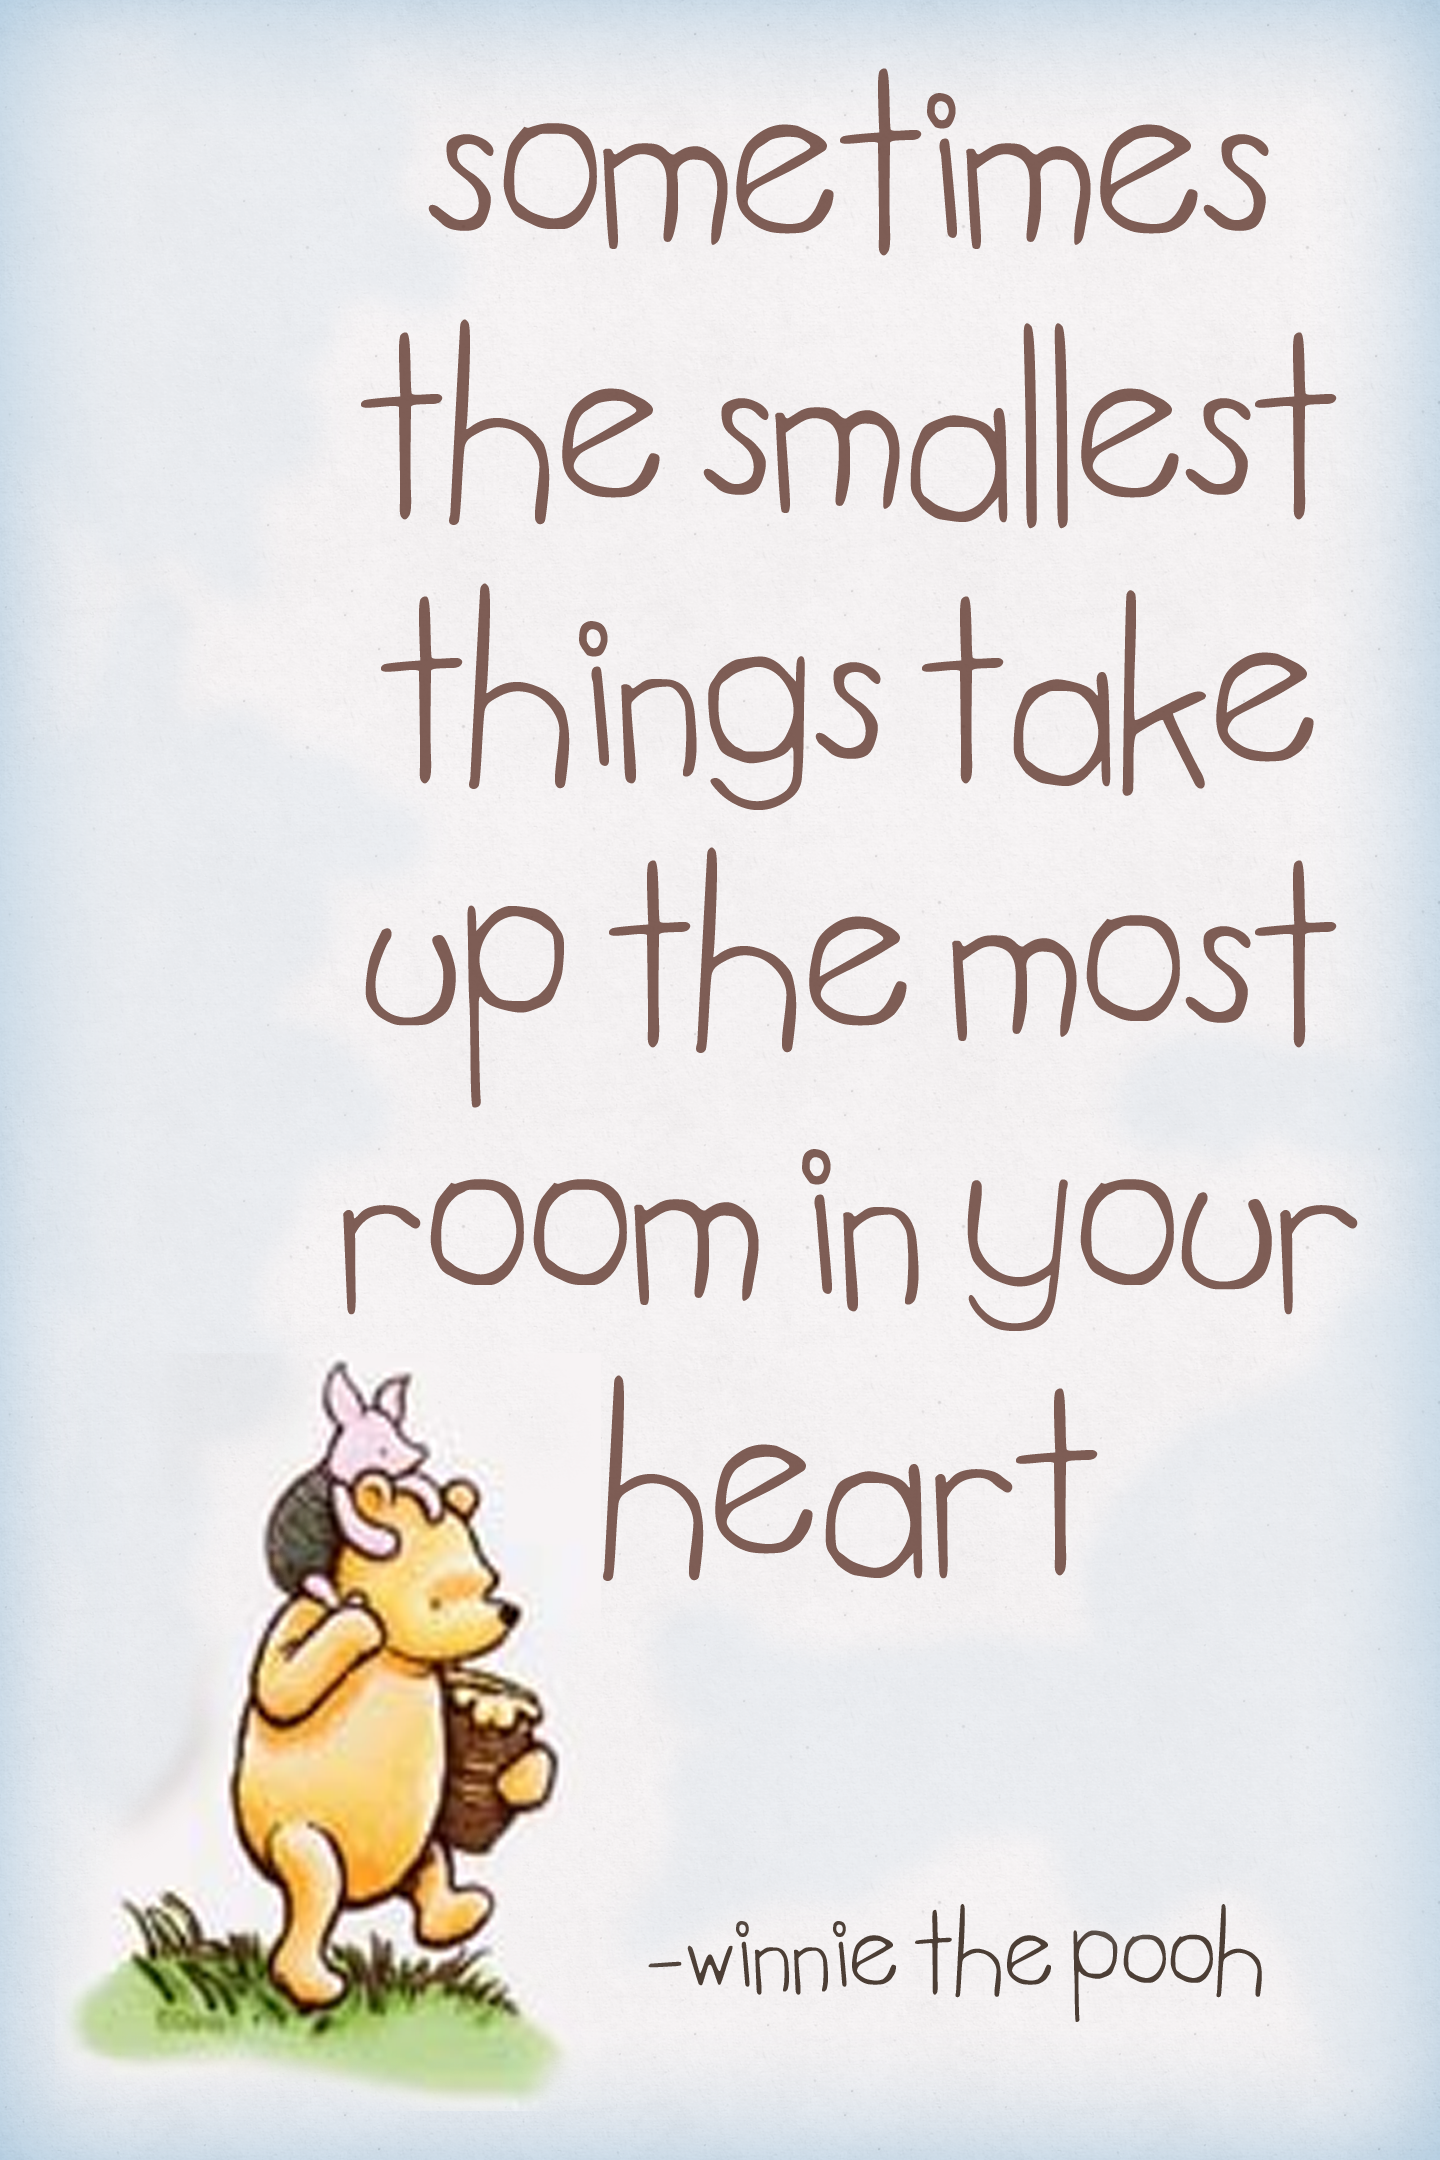 A sweet message from Winnie the Pooh would be perfect for a baby gift.